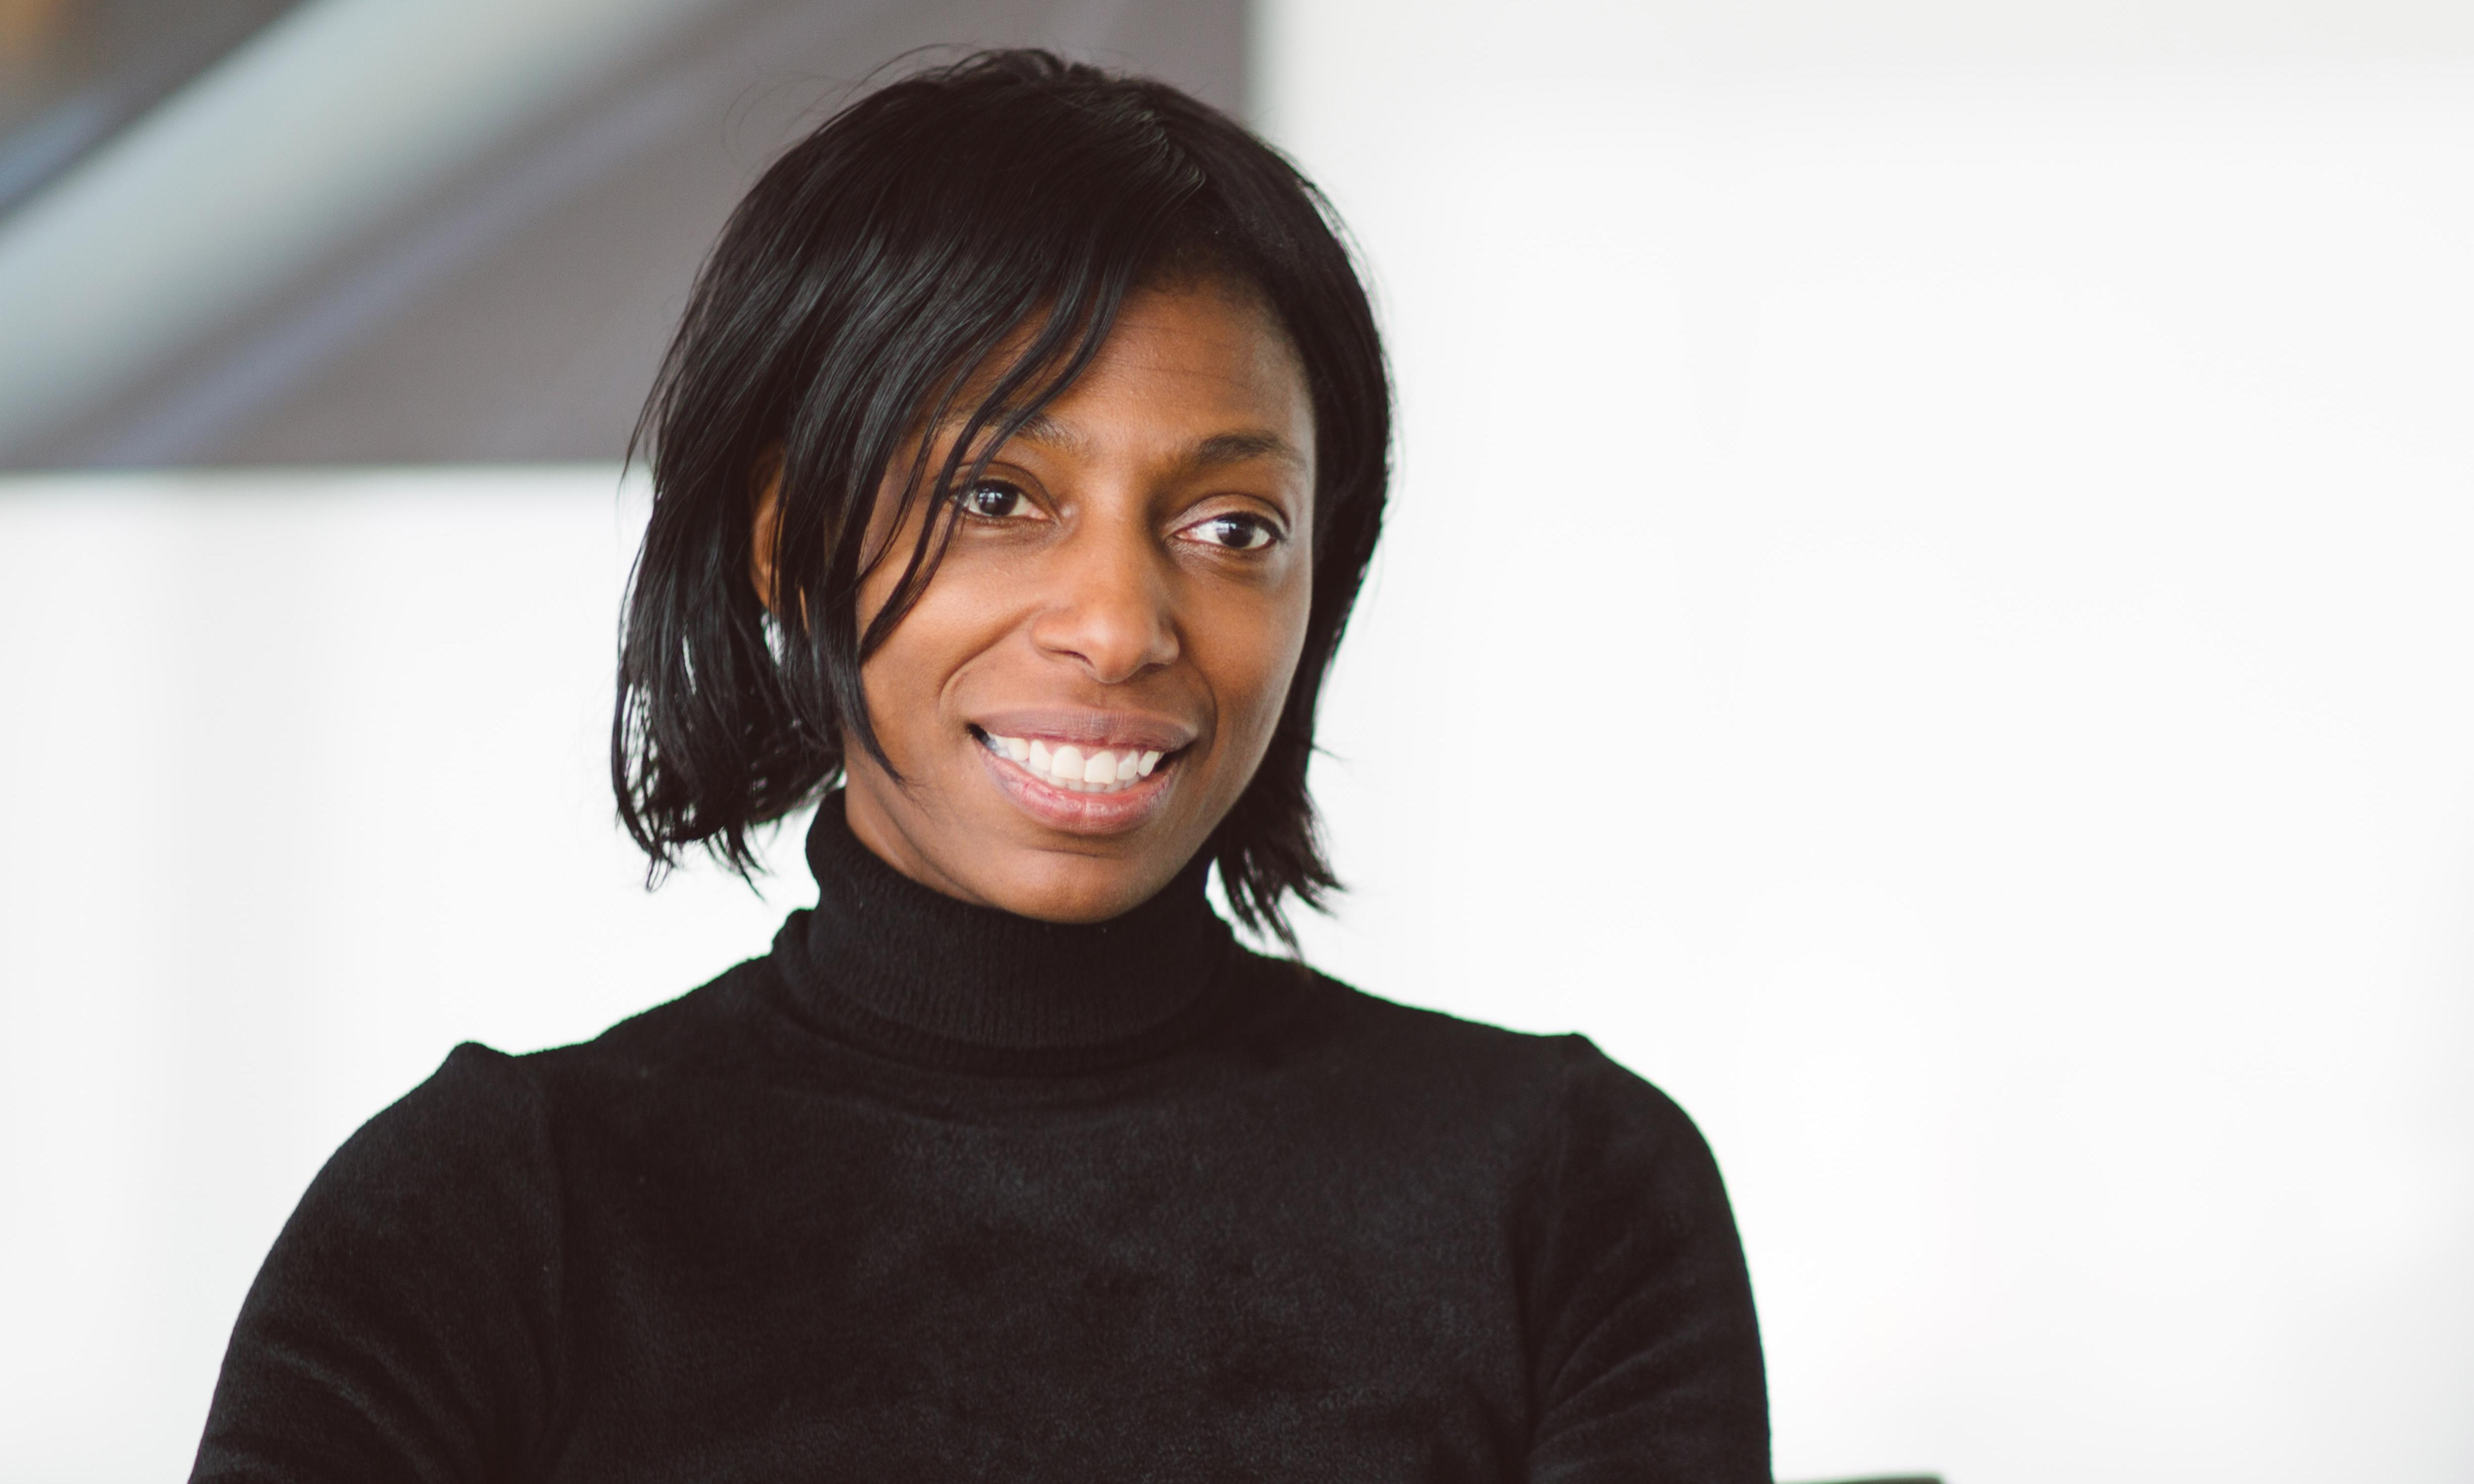 Sharon White makes maiden speech as chair at John Lewis Group